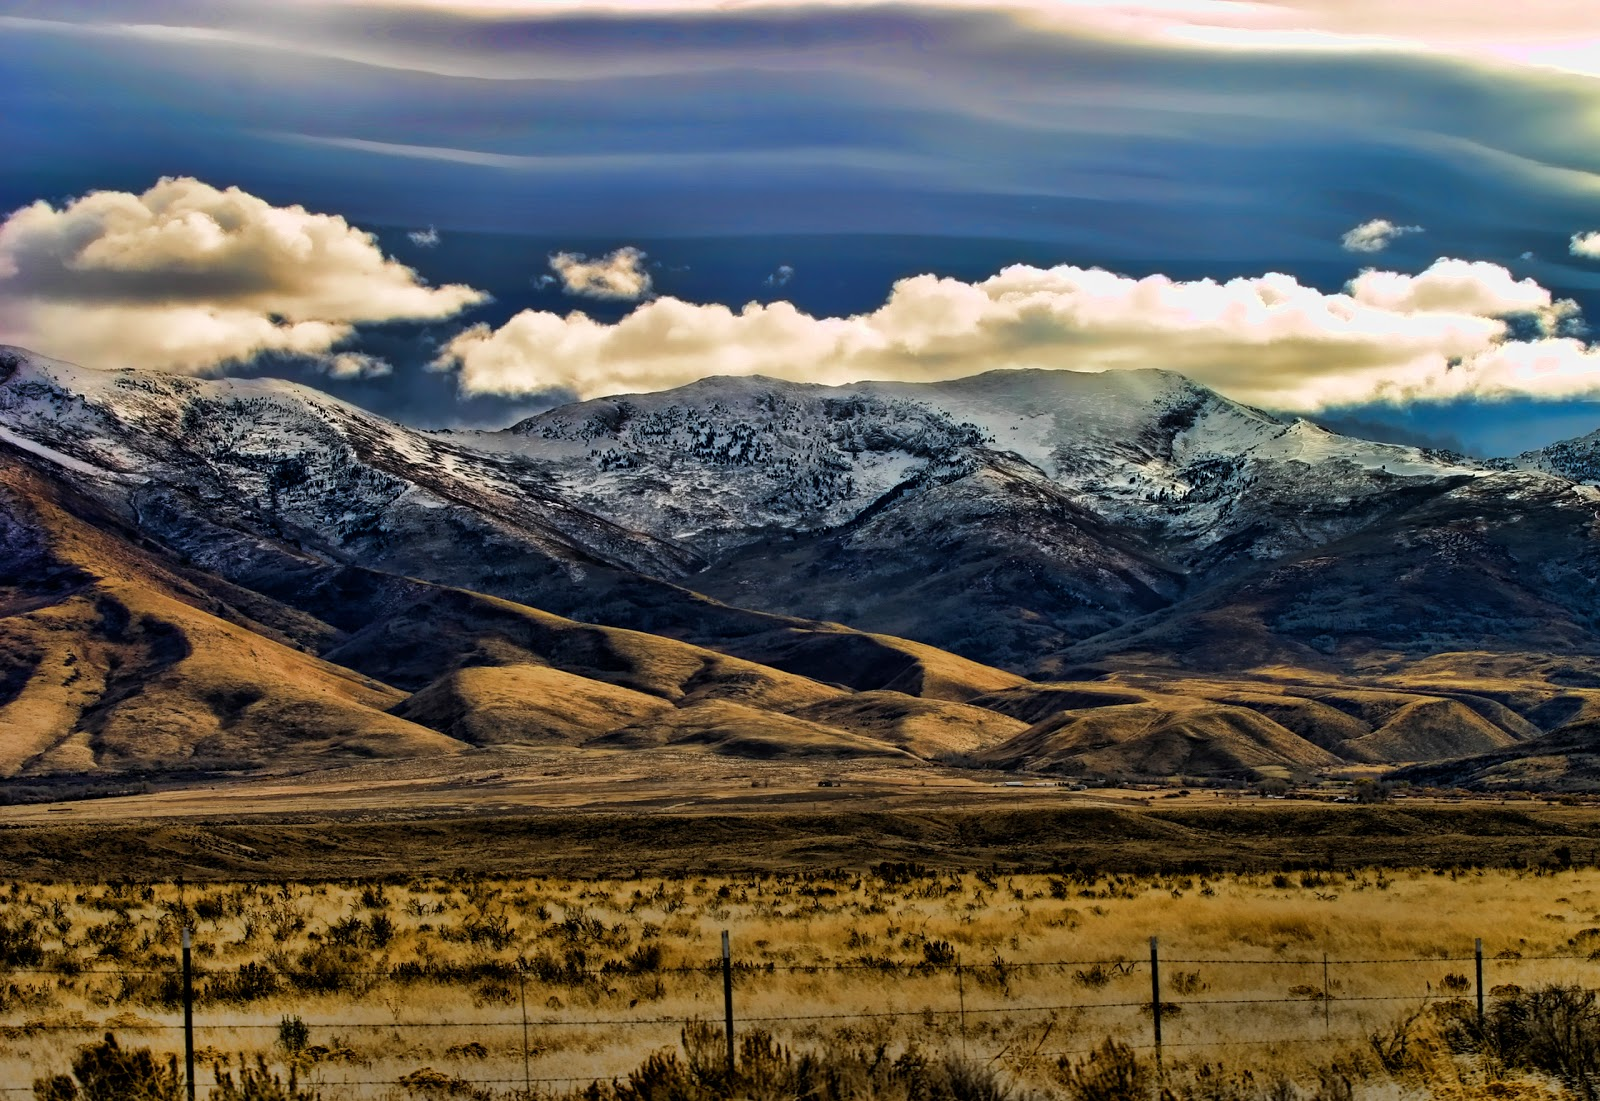 Chuck Kuhns USA in Photos Wyoming Landscape 11